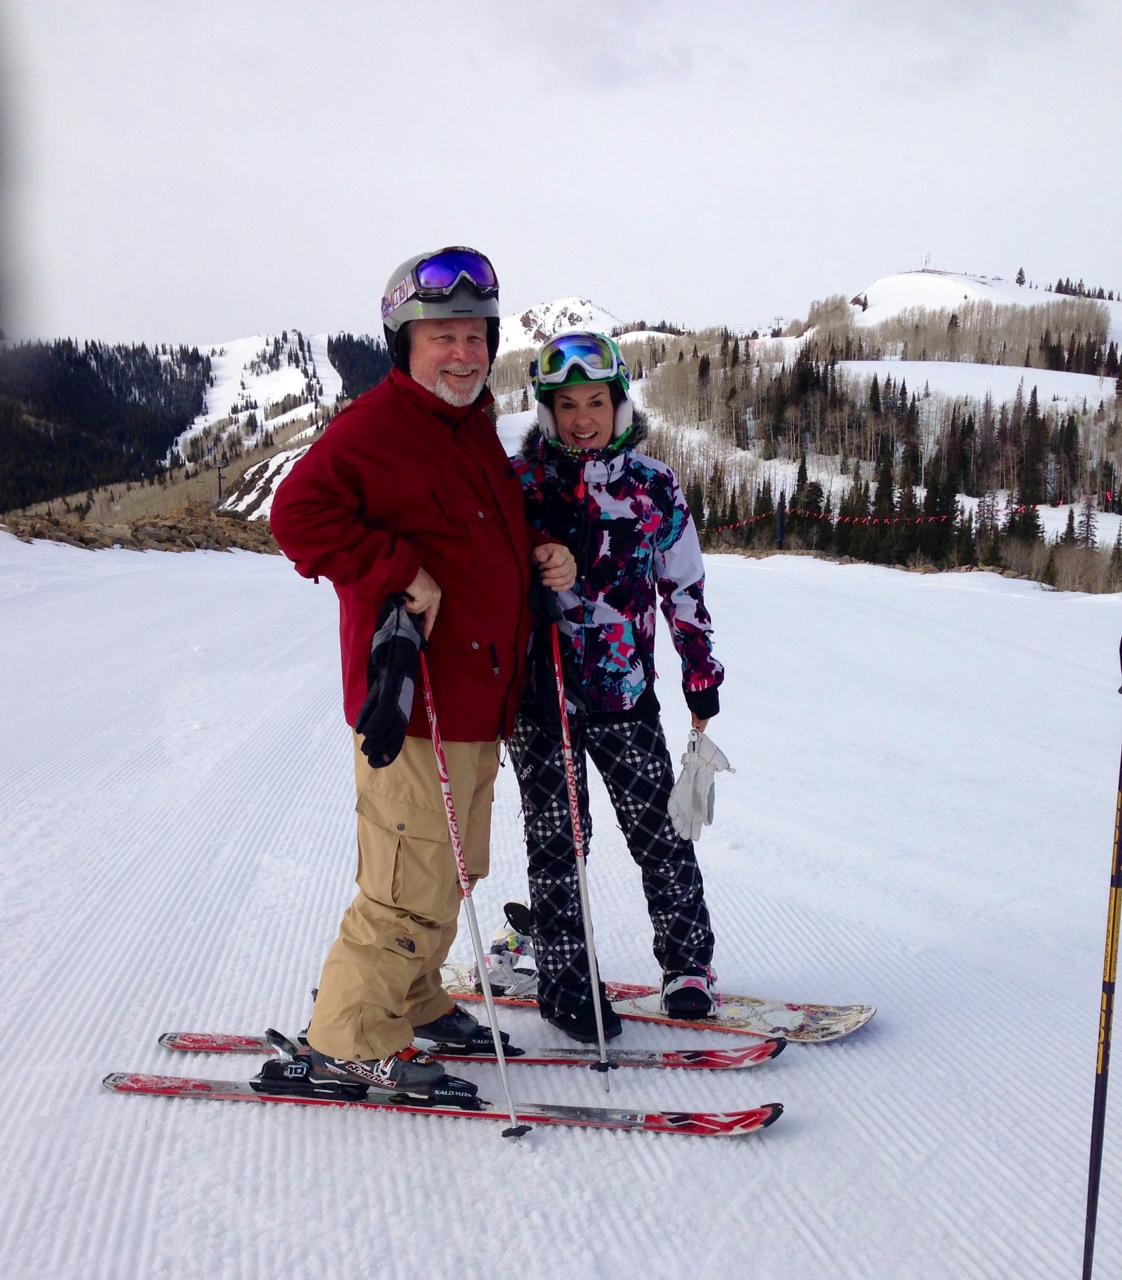 d9cd6ddd3c7 Reasons to love Spring skiing